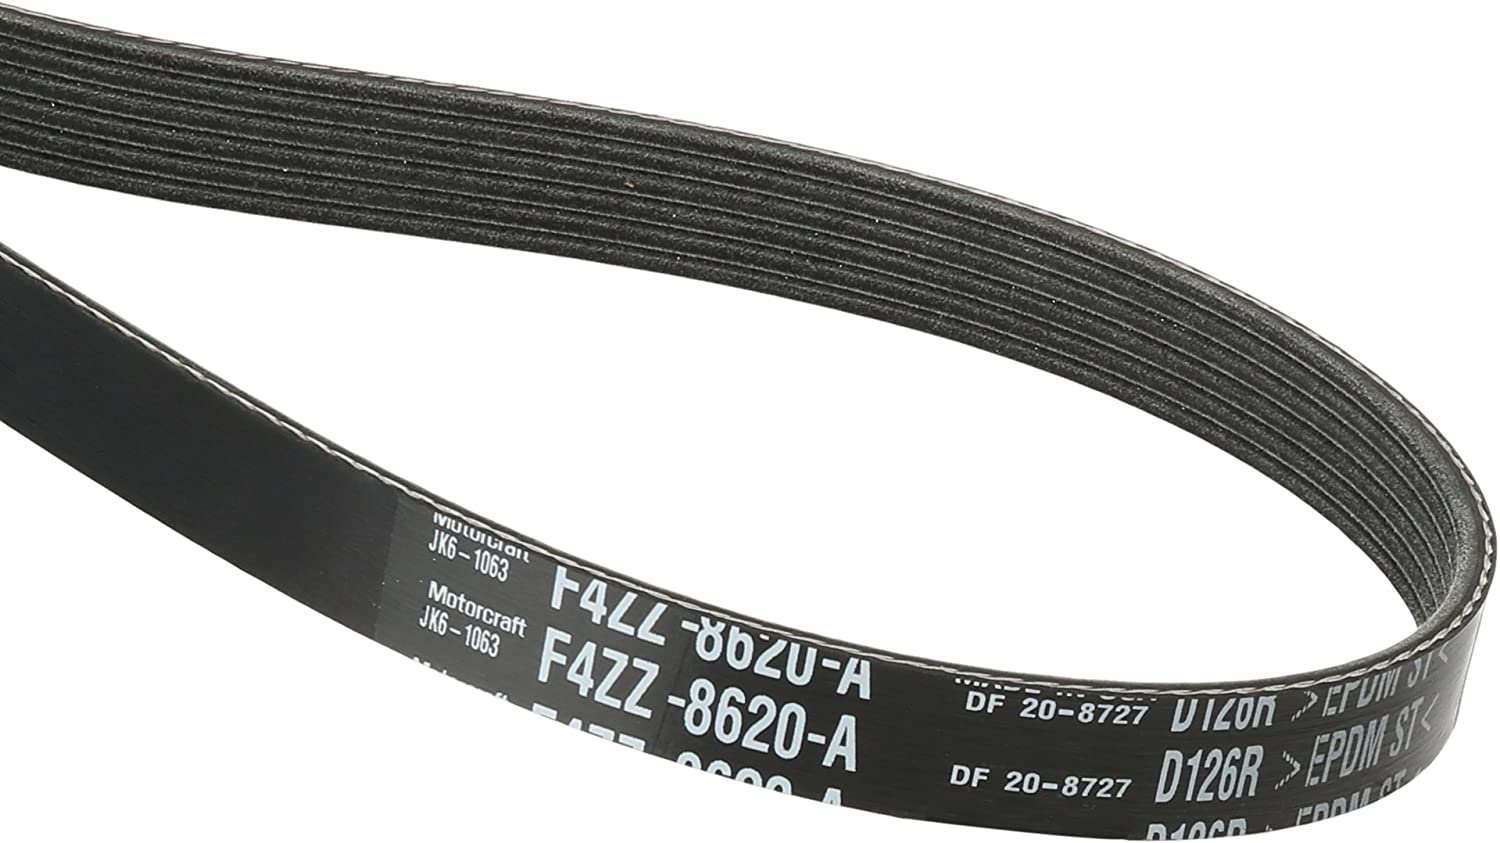 Motorcraft JK61063 Drive Belt